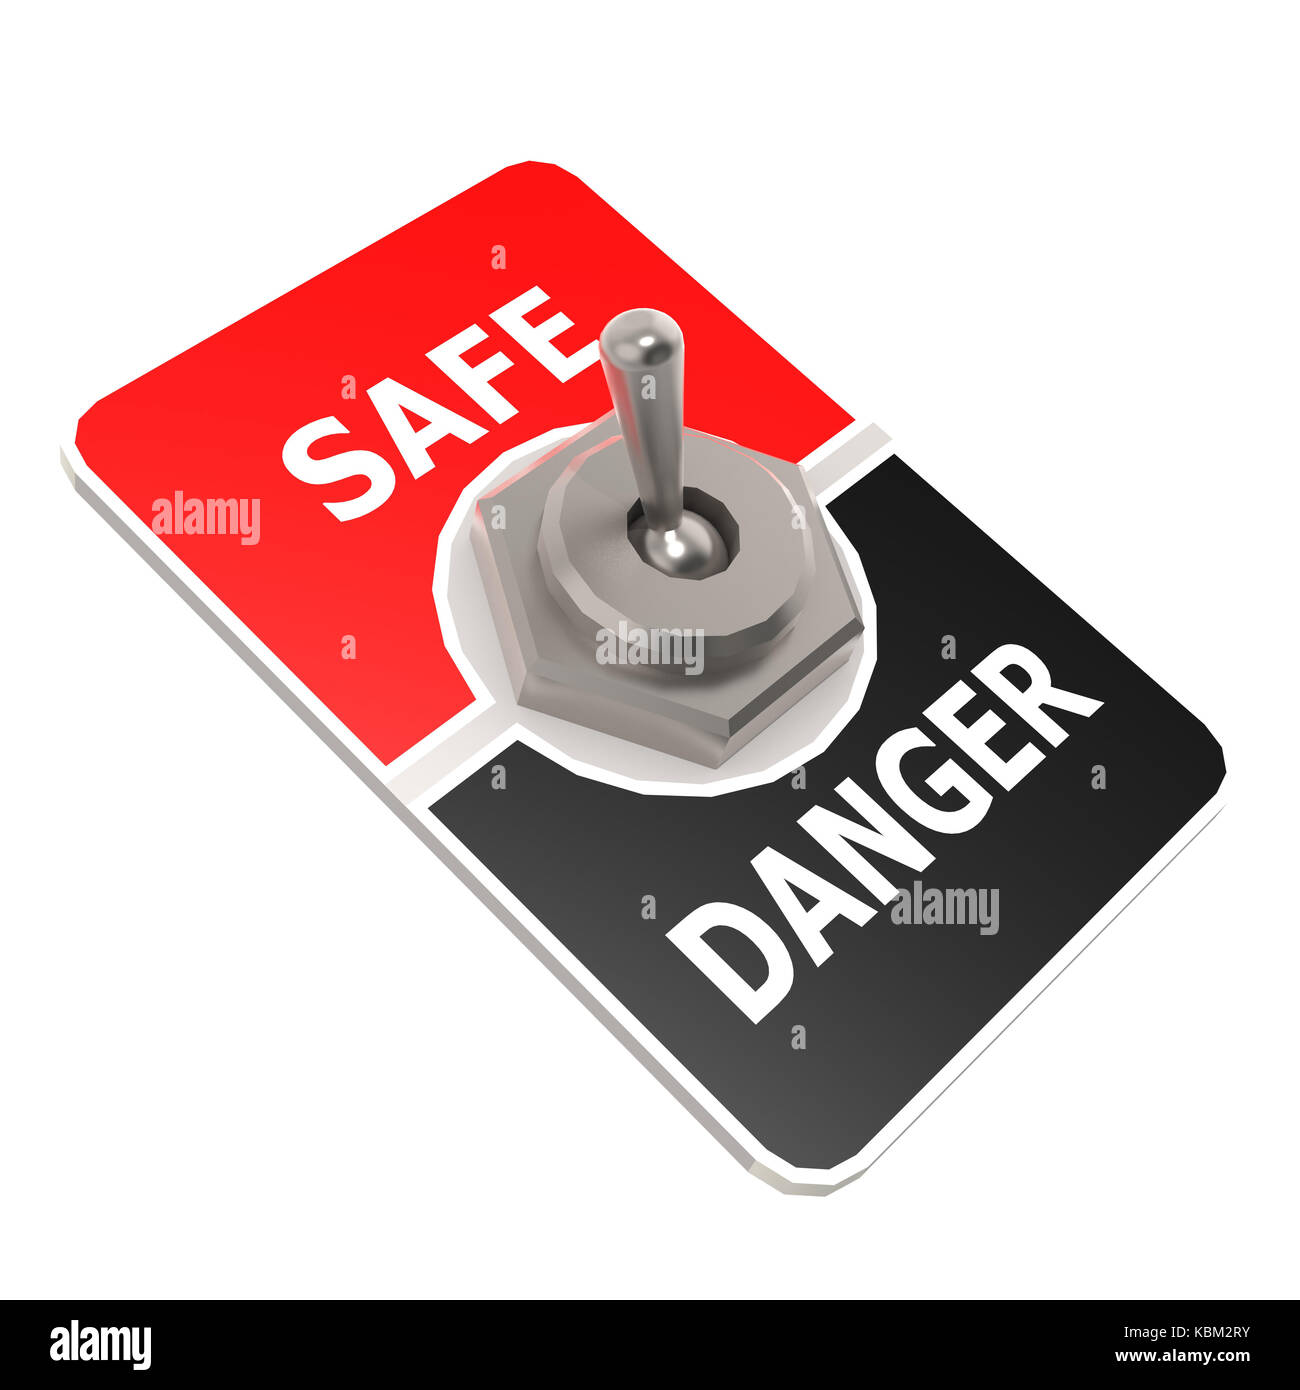 Safe toggle switch image with hi-res rendered artwork that could be used for any graphic design. - Stock Image